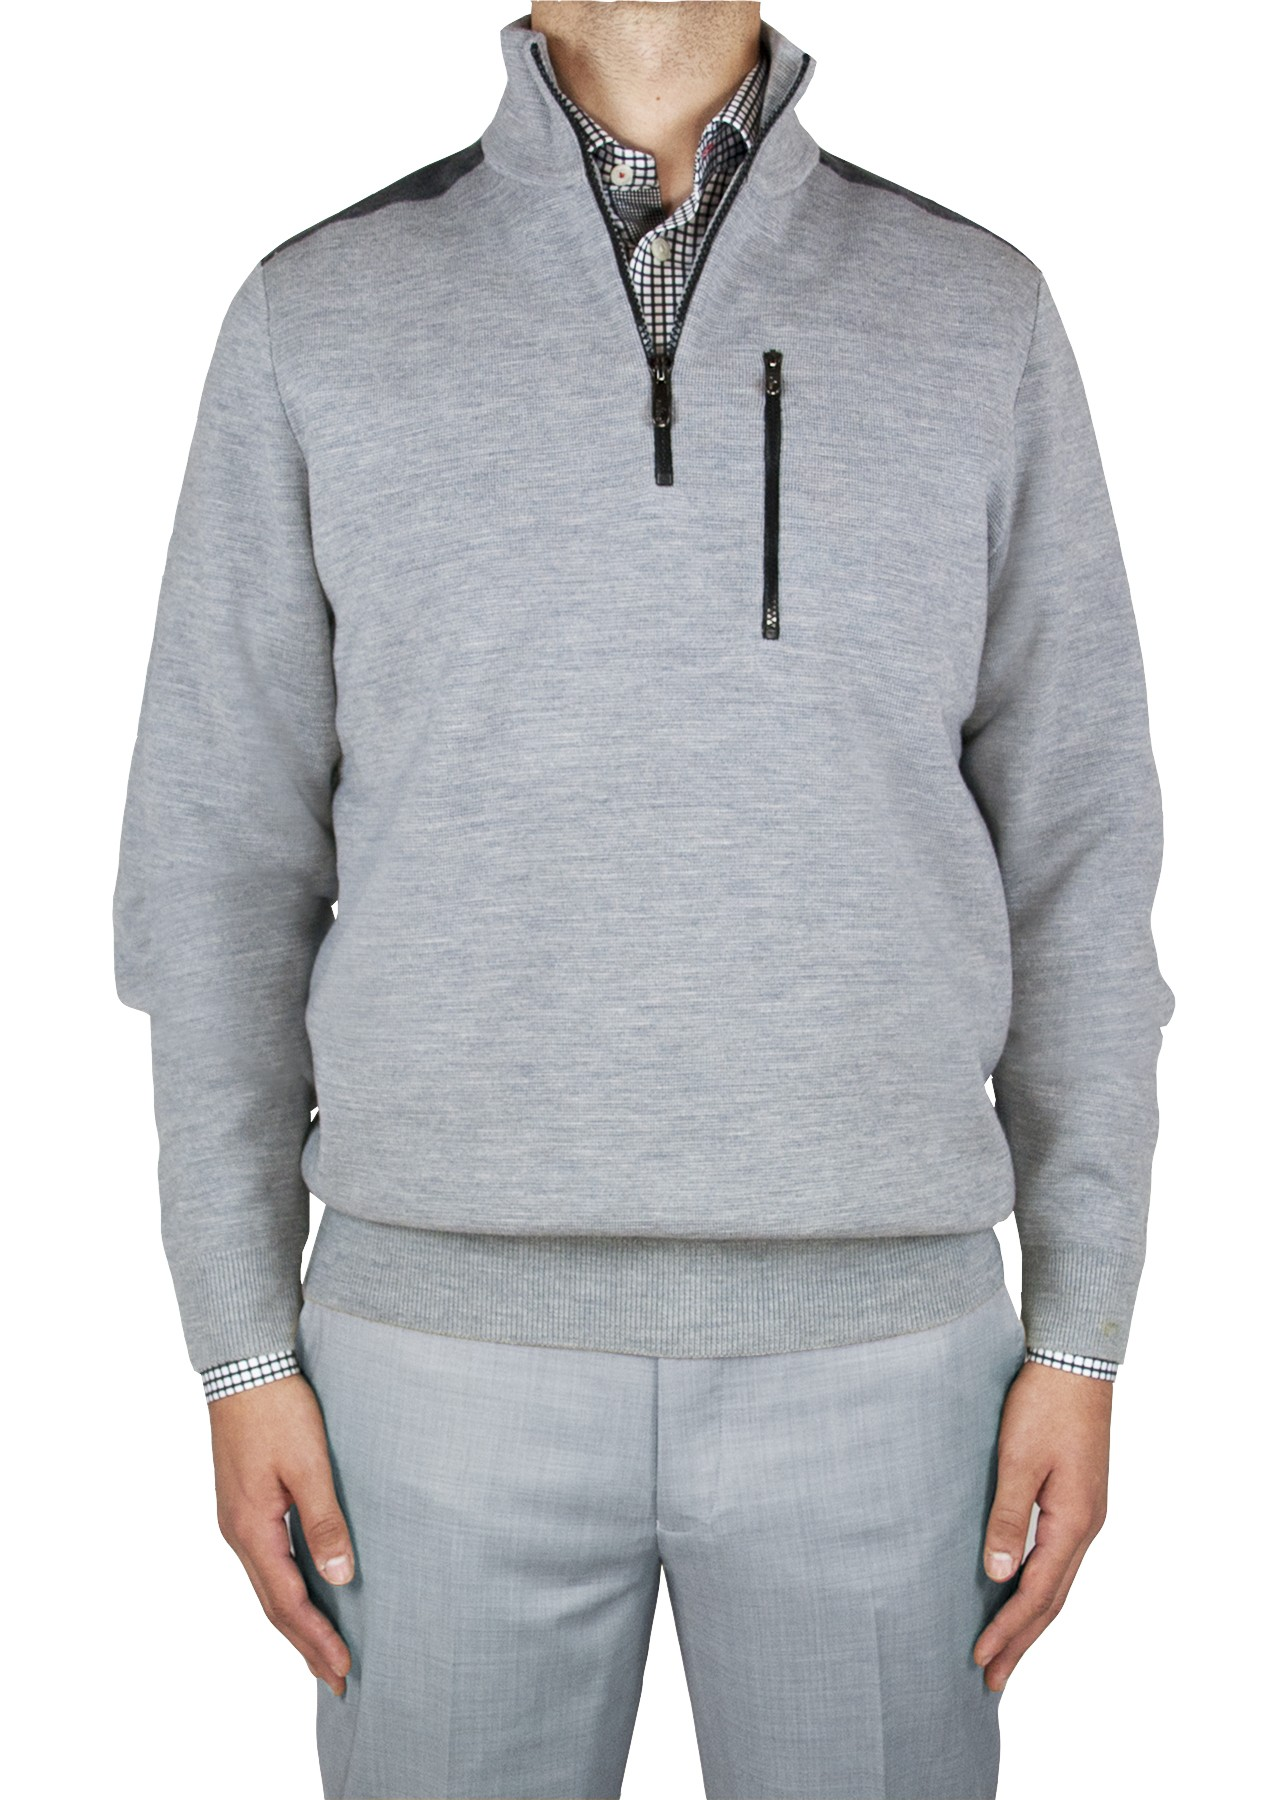 "Aristo 18 ""Dunkirk"" 1/4 Zip Mock Commando Sweater - Wool/Cotton"